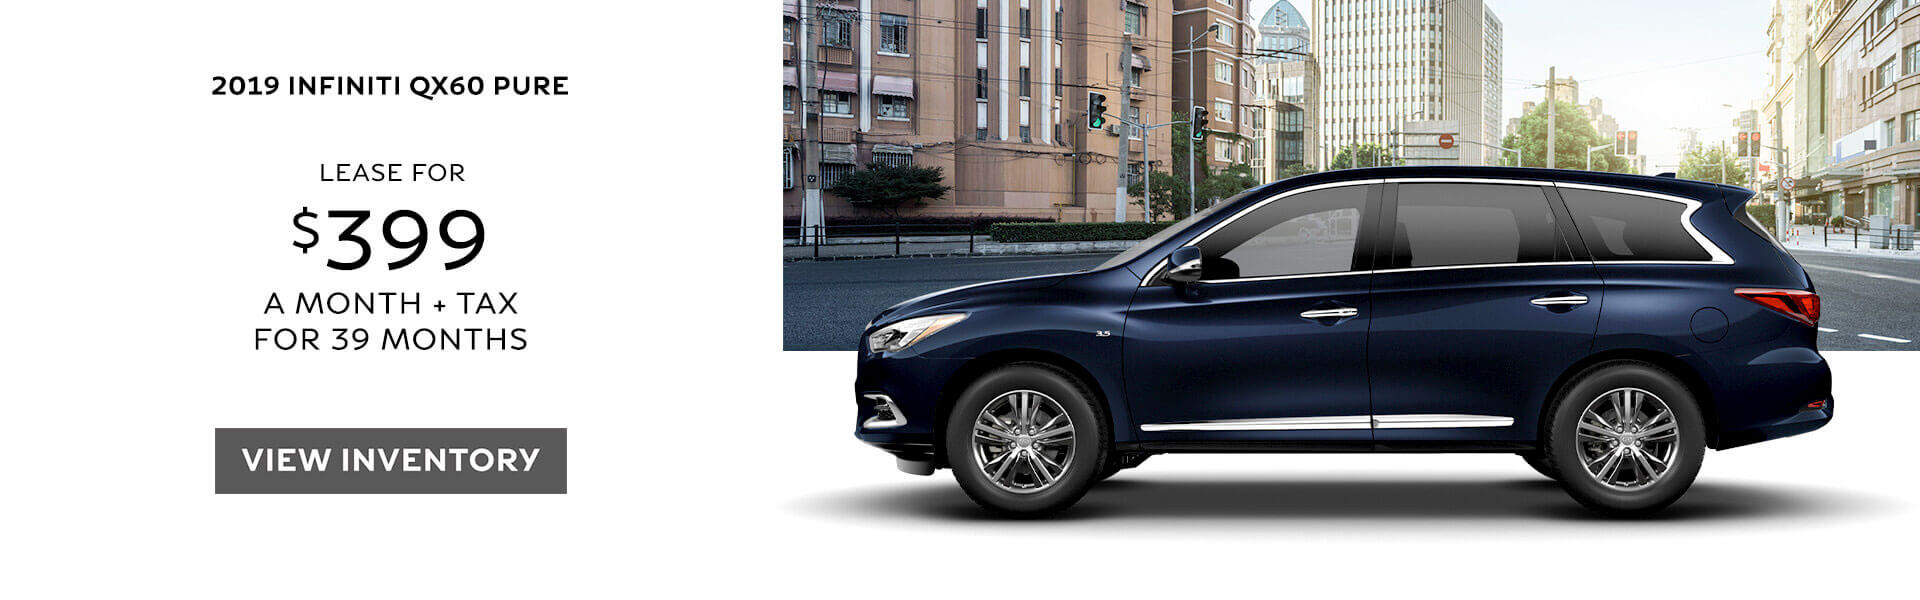 2019 QX60 - Lease for $399